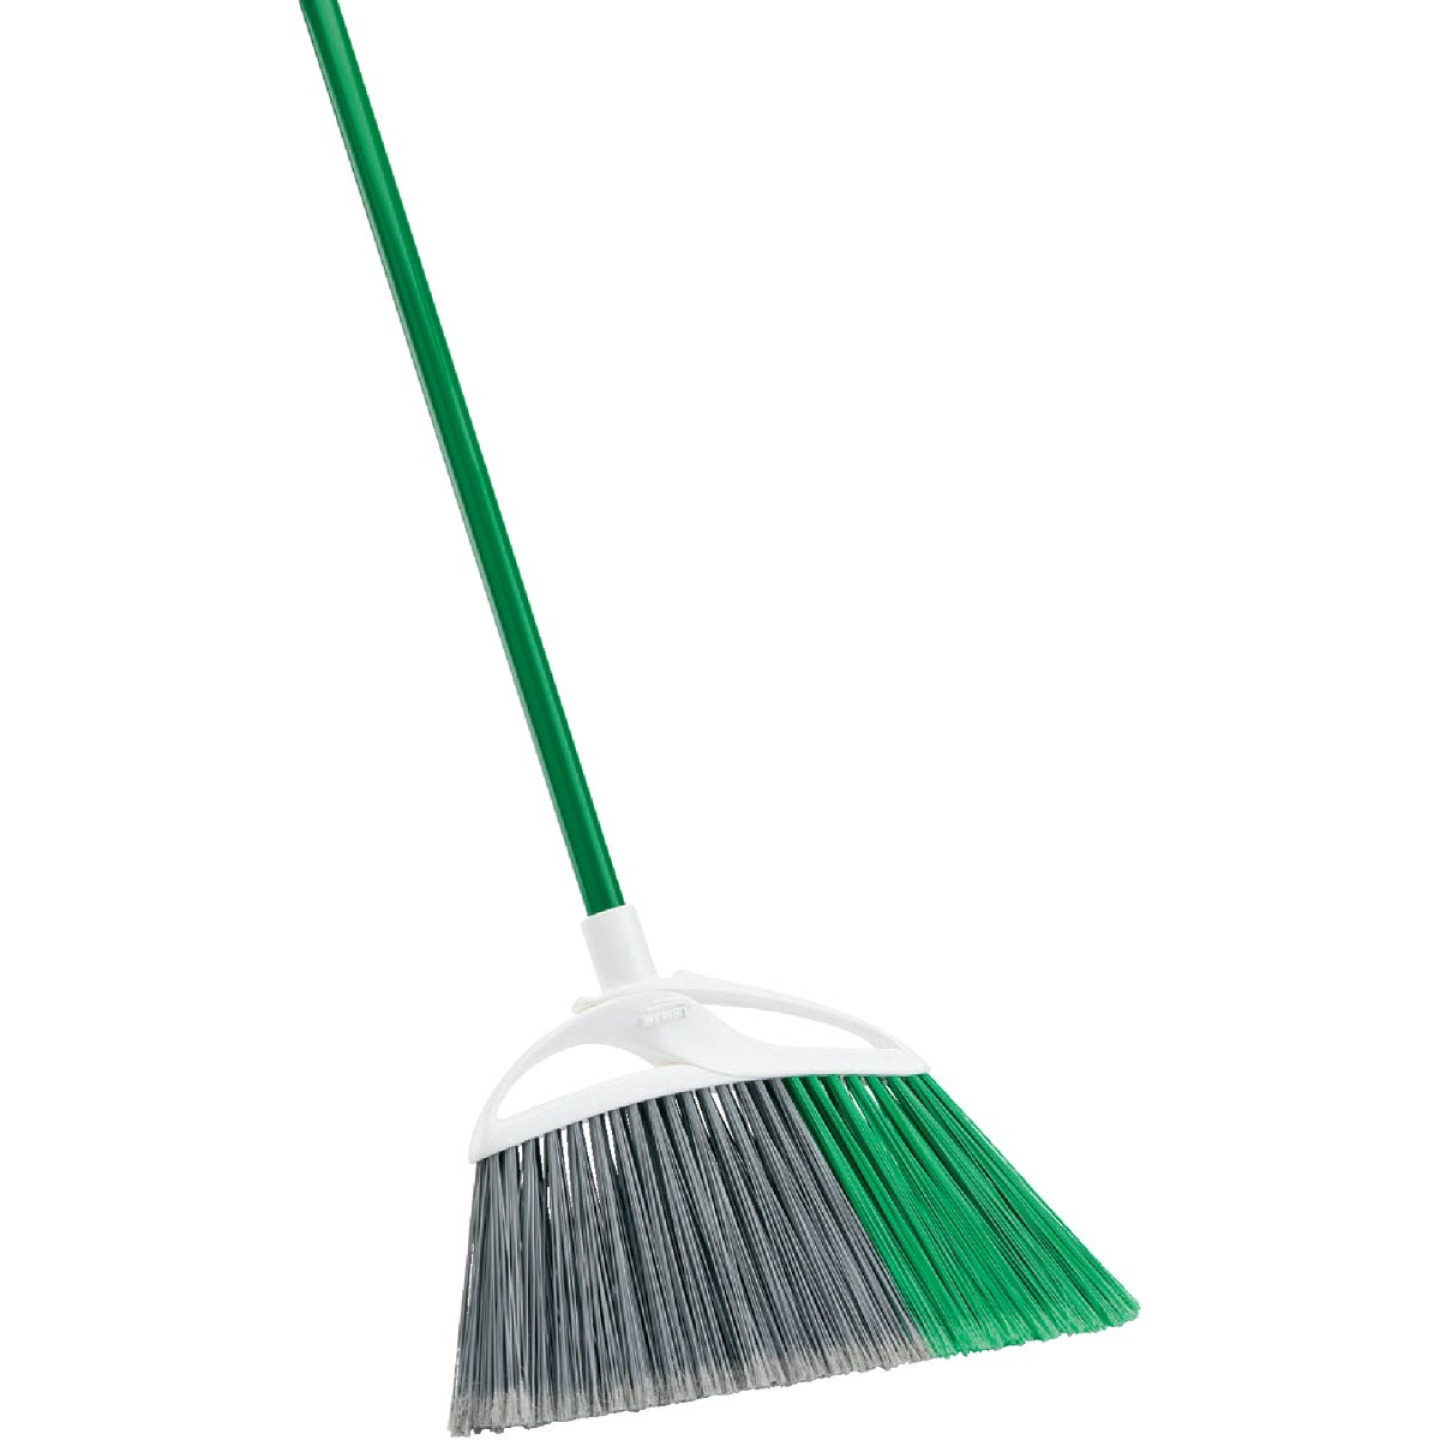 Libman 16 In. W. x 55 In. L. Steel Handle Extra Large Precision Angle Broom Image 1